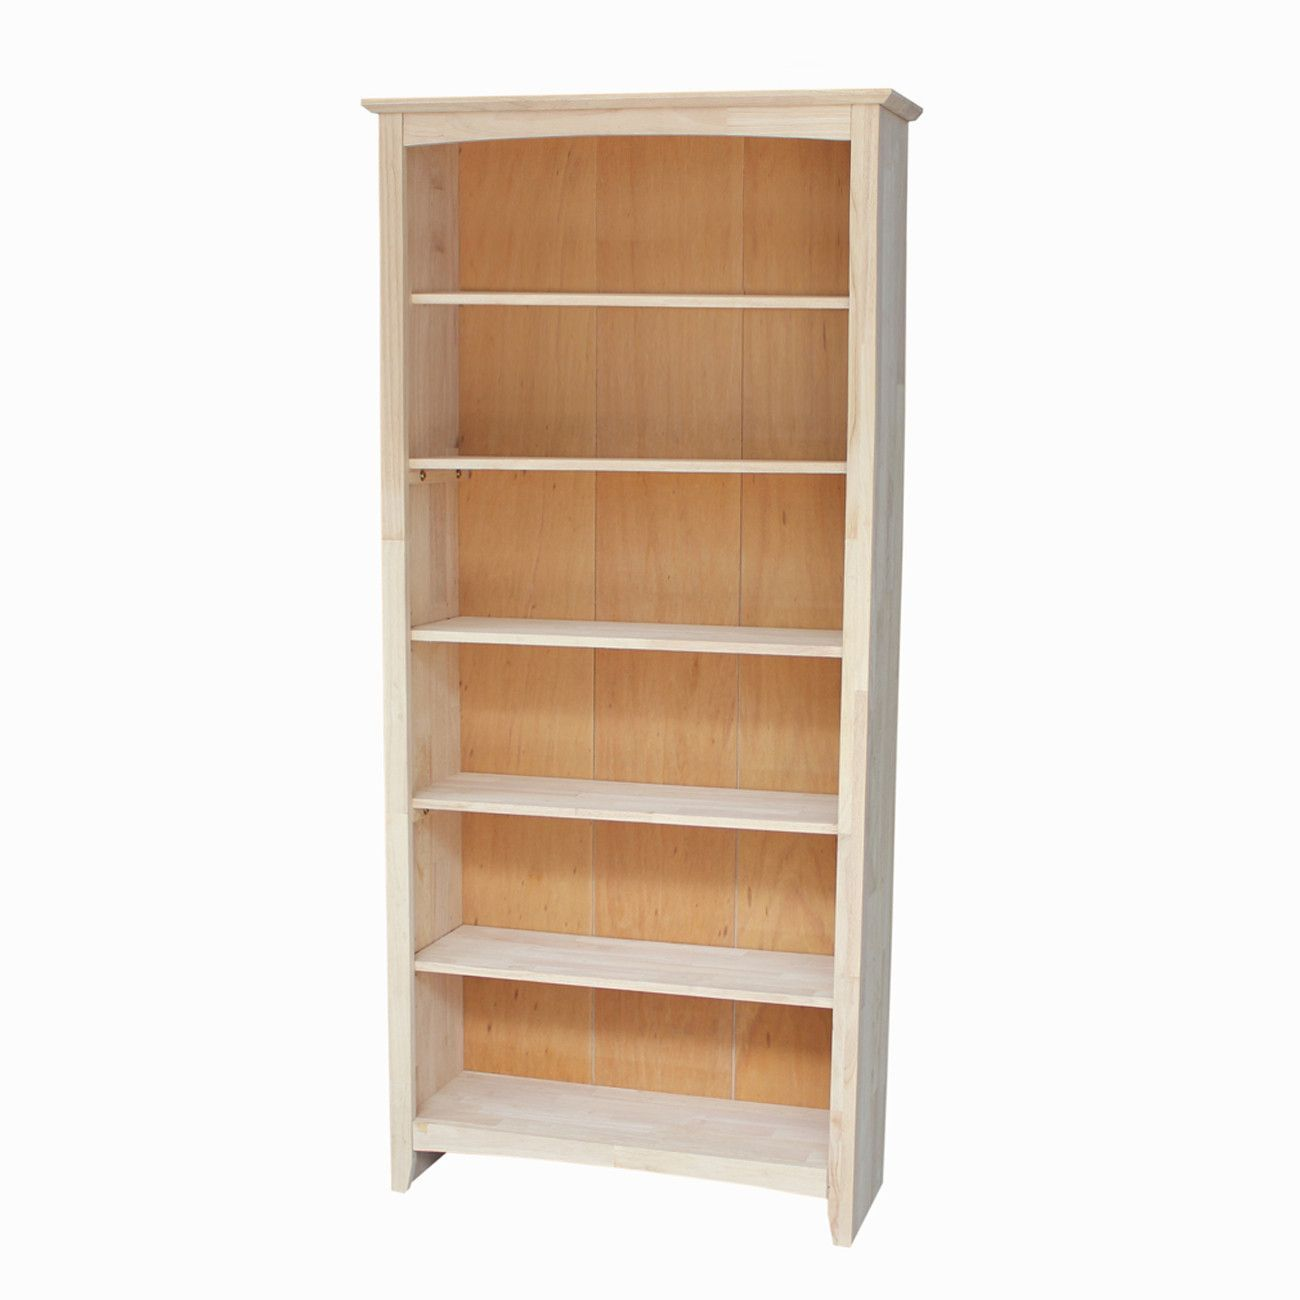 Shaker Hardwood Bookcase 32 Wide X 72 Tall Finished Options